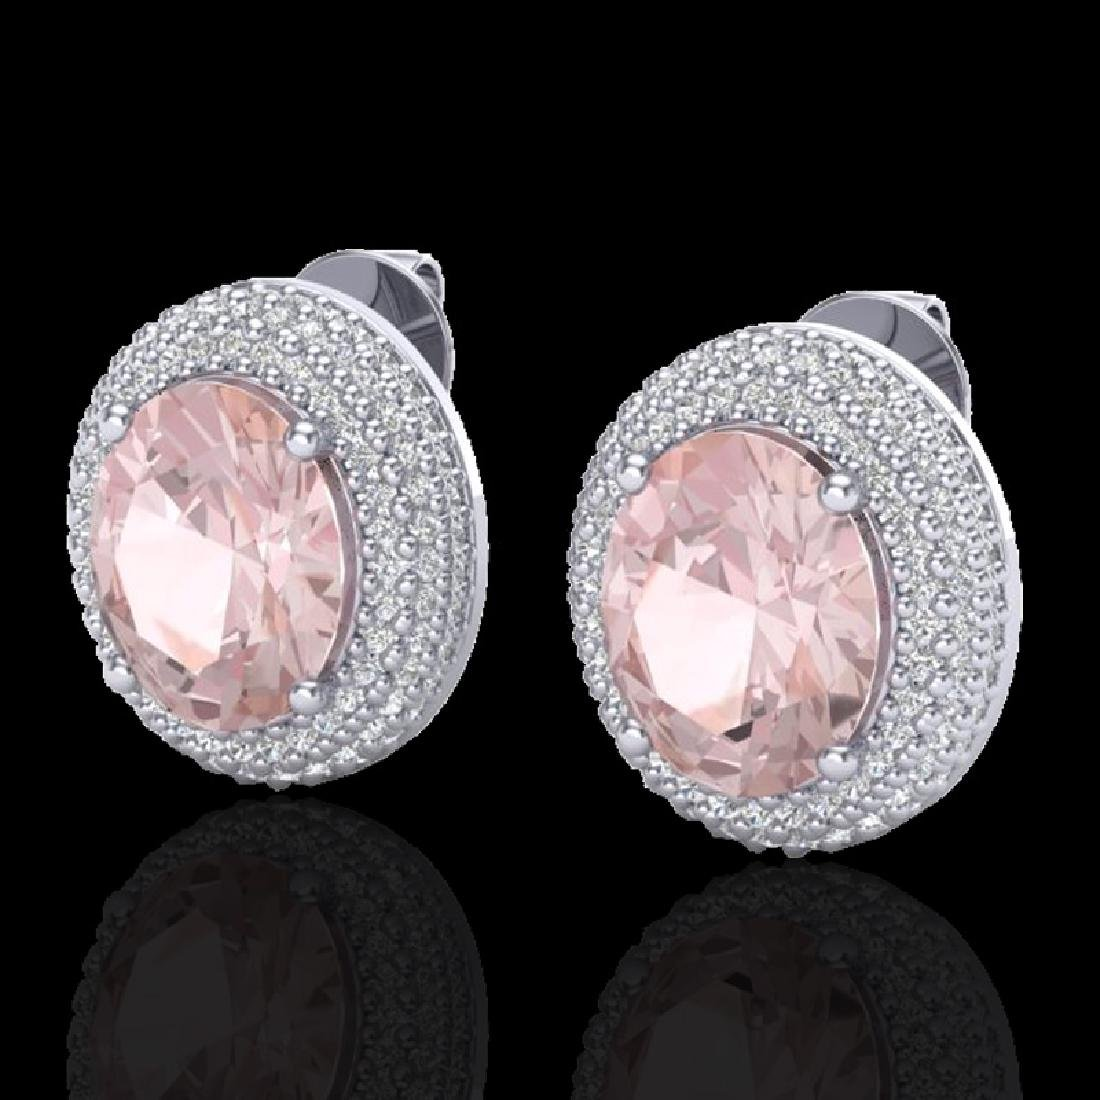 9 CTW Morganite & Micro Pave VS/SI Diamond Earrings 18K